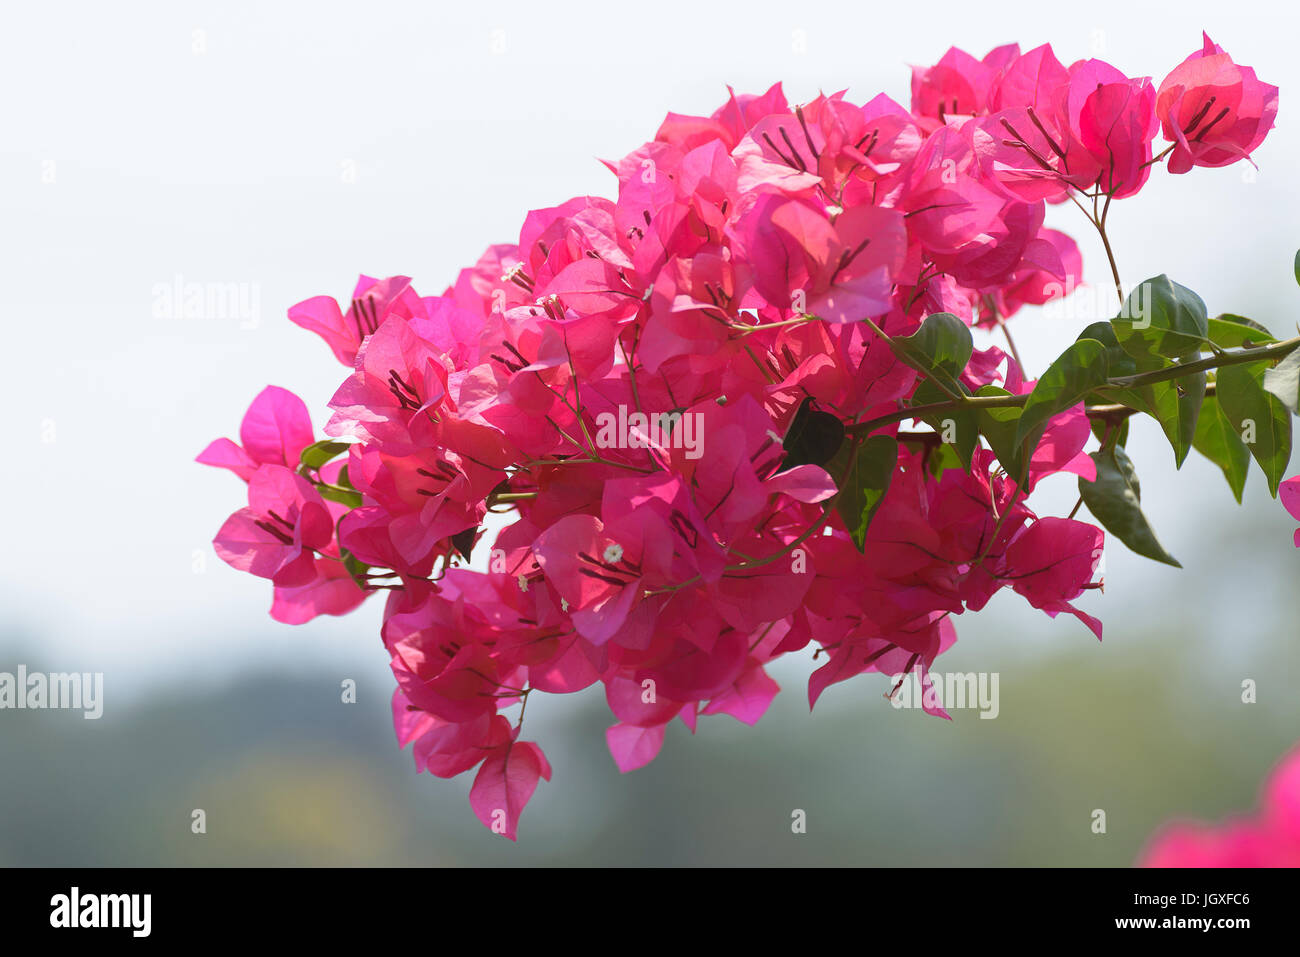 Pink bougainvillea flower or paper flower with leaves in the garden pink bougainvillea flower or paper flower with leaves in the garden plant background blurry asian flowers shallow dof mightylinksfo